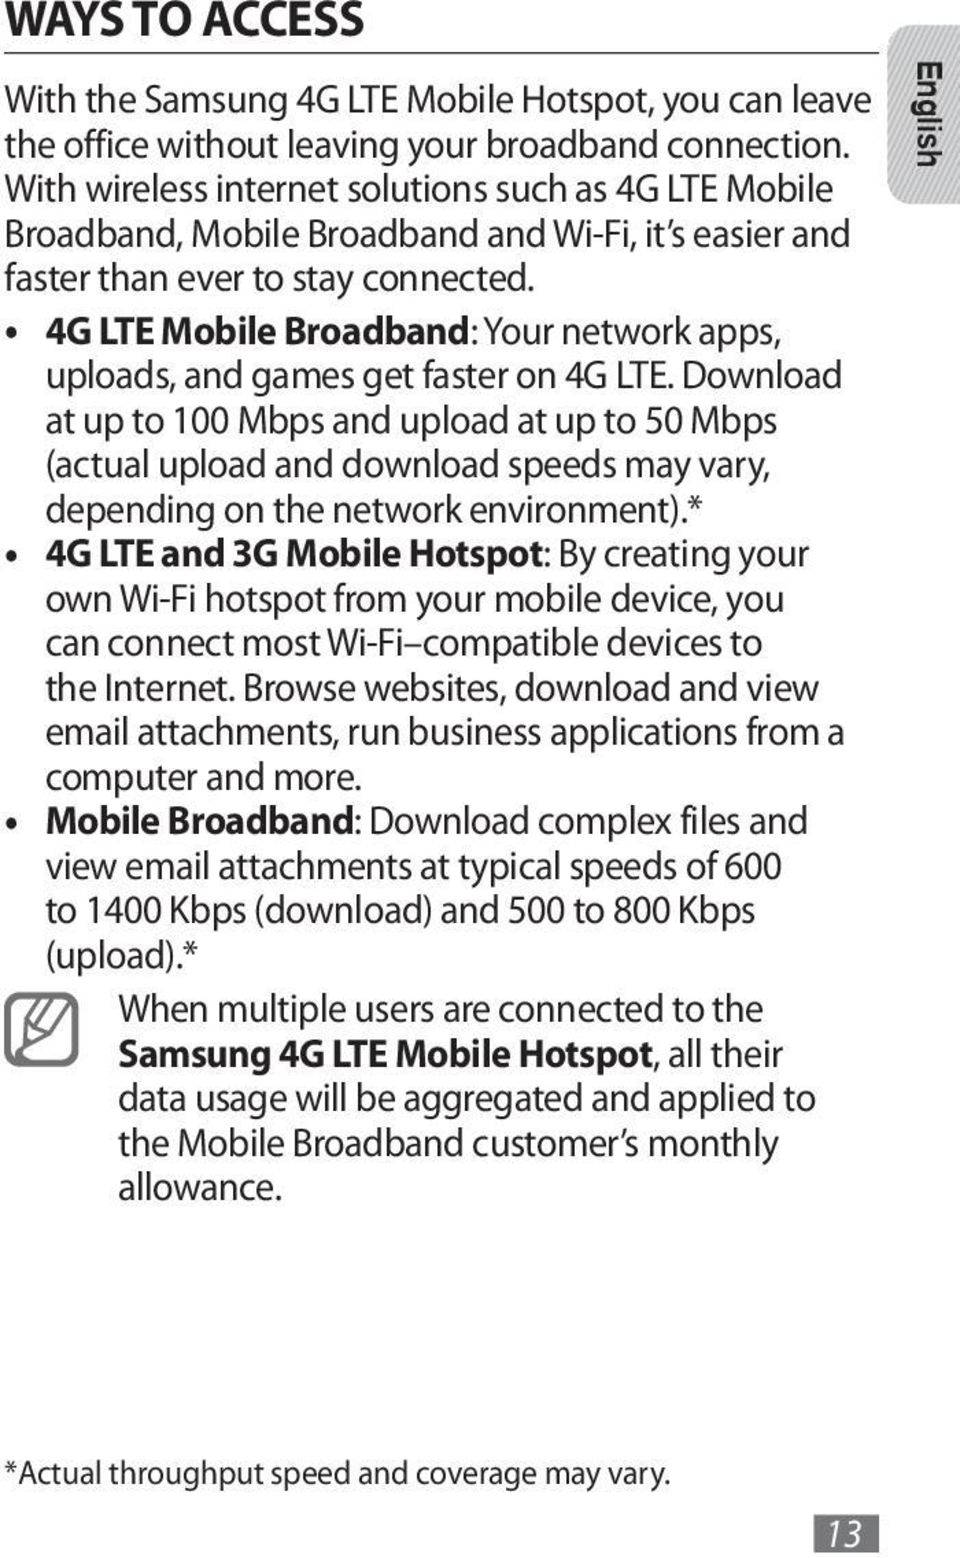 4G LTE Mobile Broadband: Your network apps, uploads, and games get faster on 4G LTE.